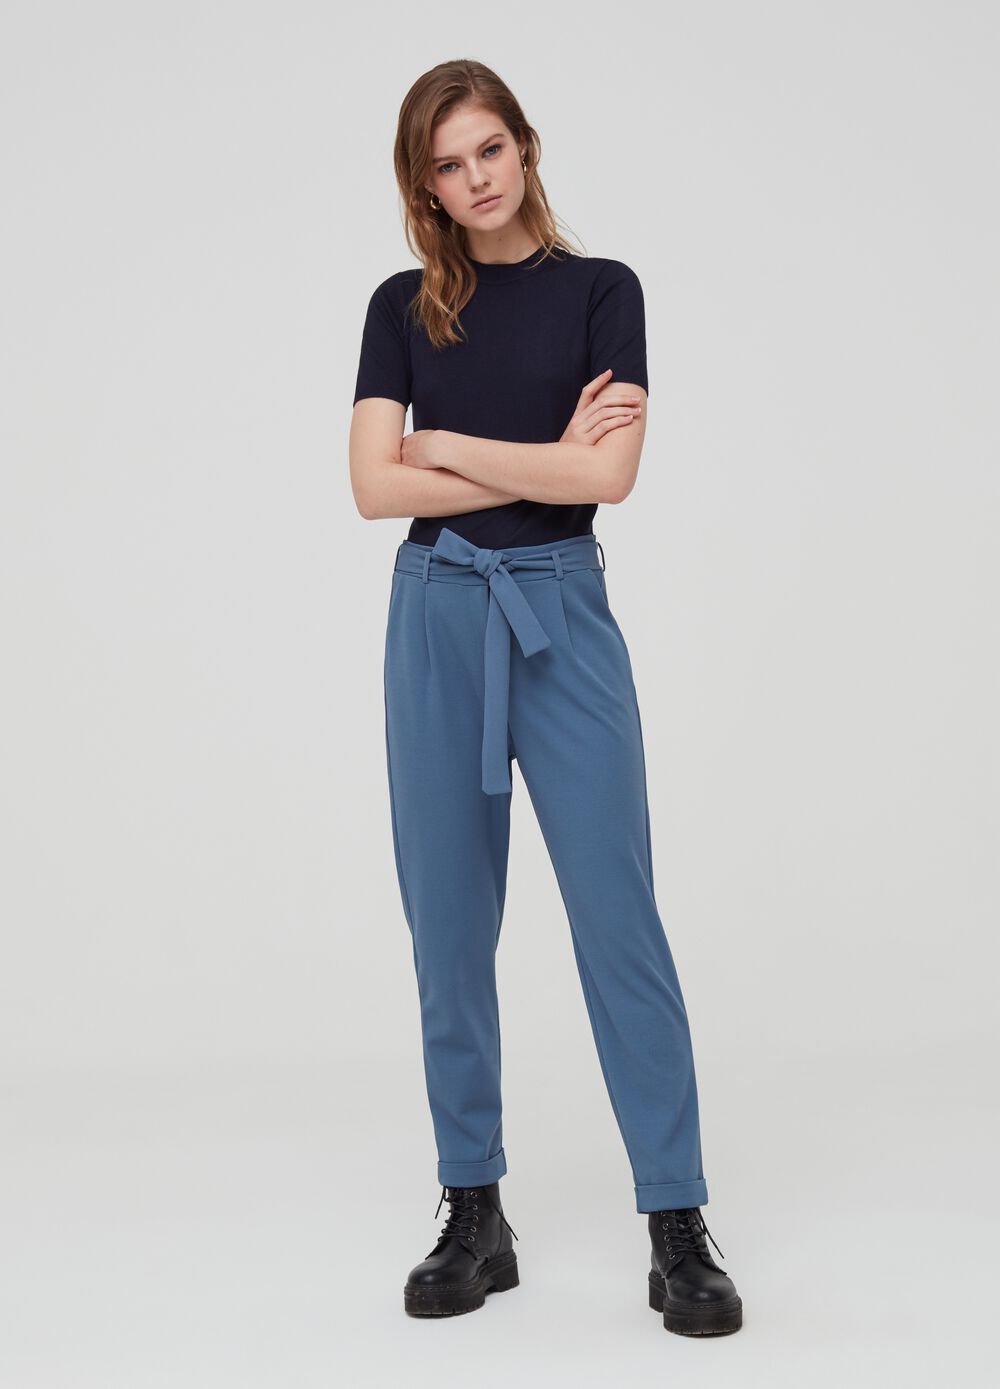 Crepe trousers with high waist